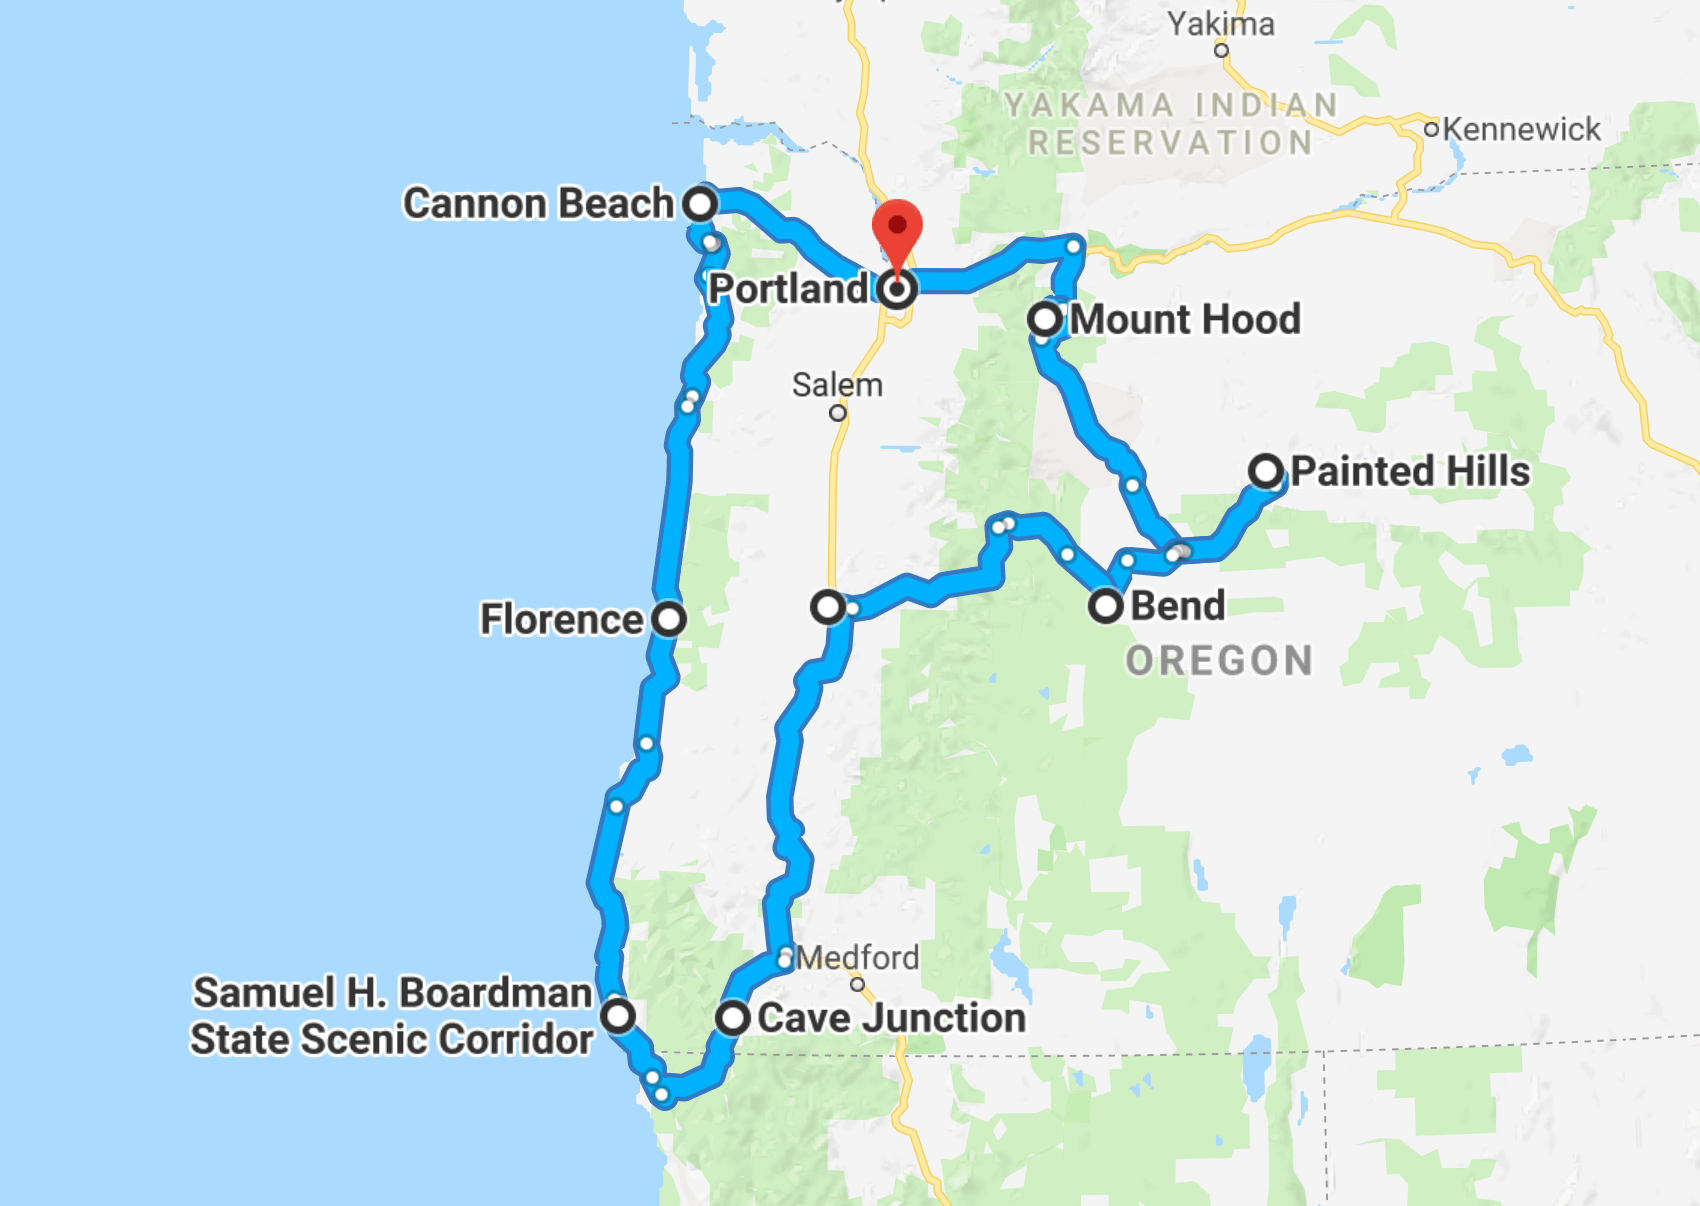 The Ultimate Oregon Road Trip Itinerary You Should Steal